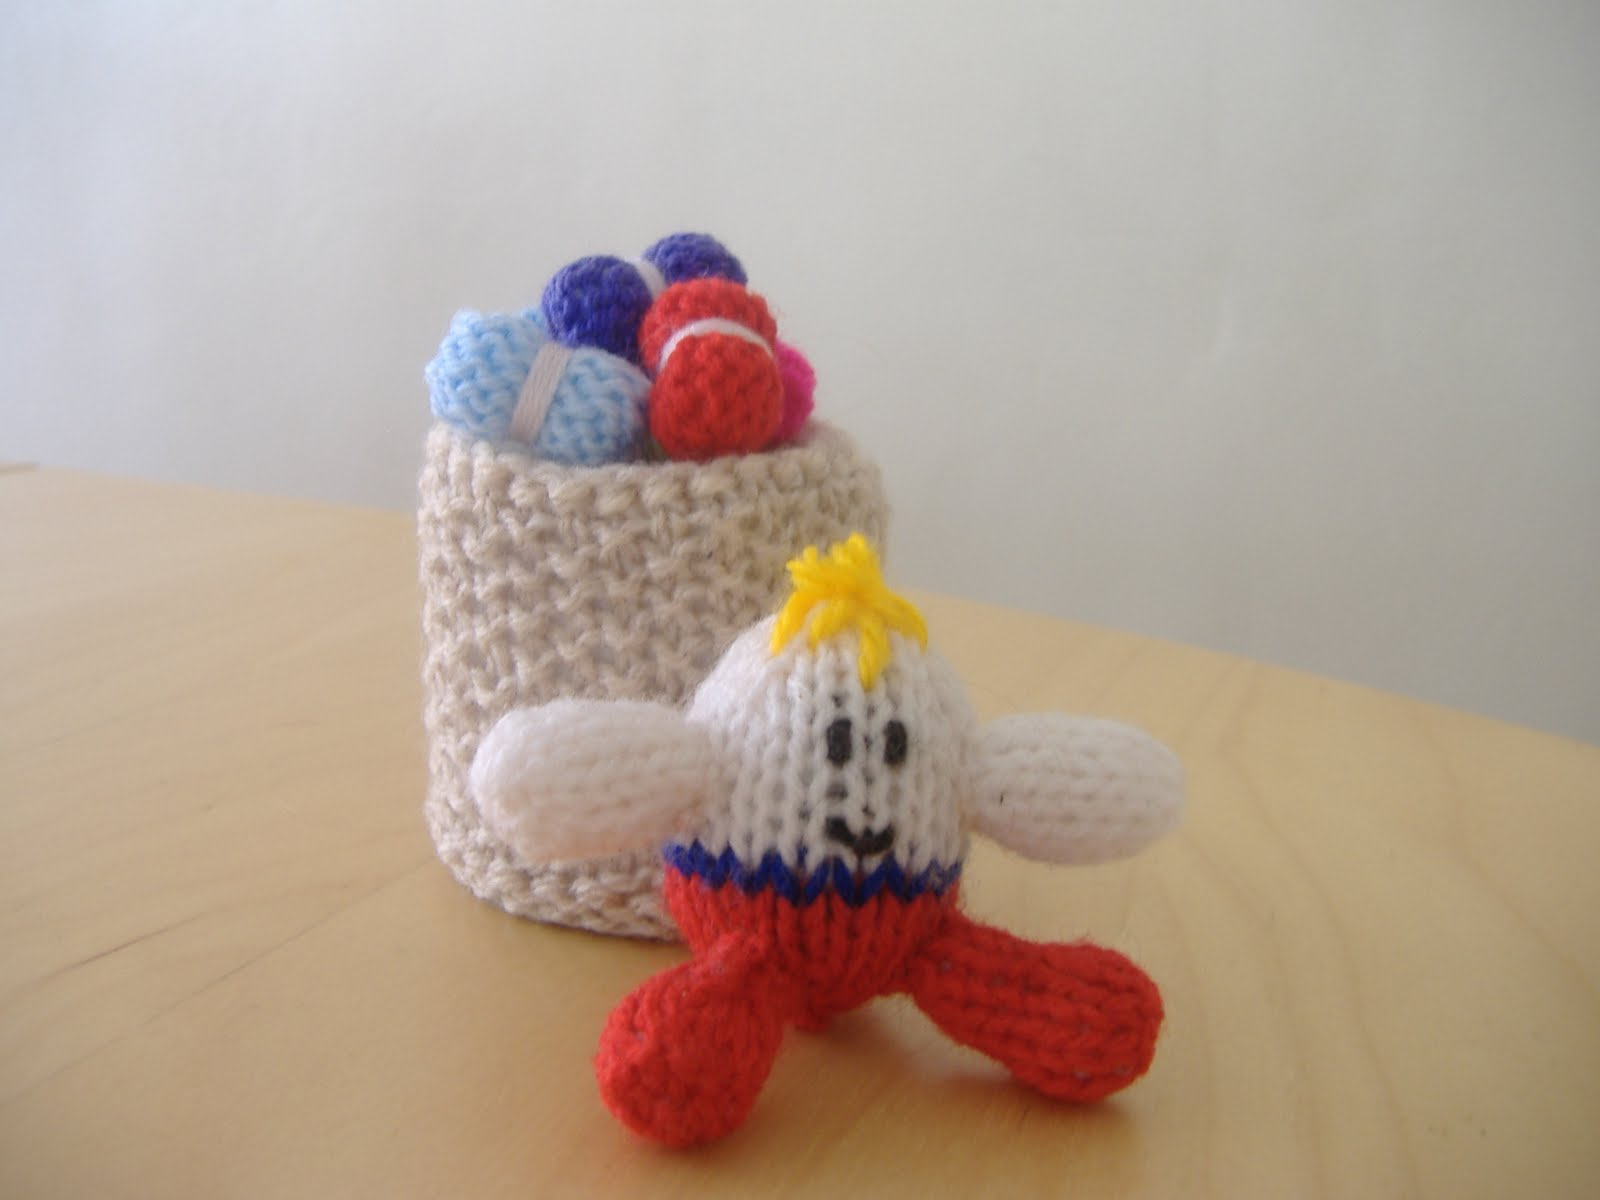 Knitting Pattern For Humpty Dumpty : A little bit of everything: Tiny Knitted Humpty Dumpty and ...